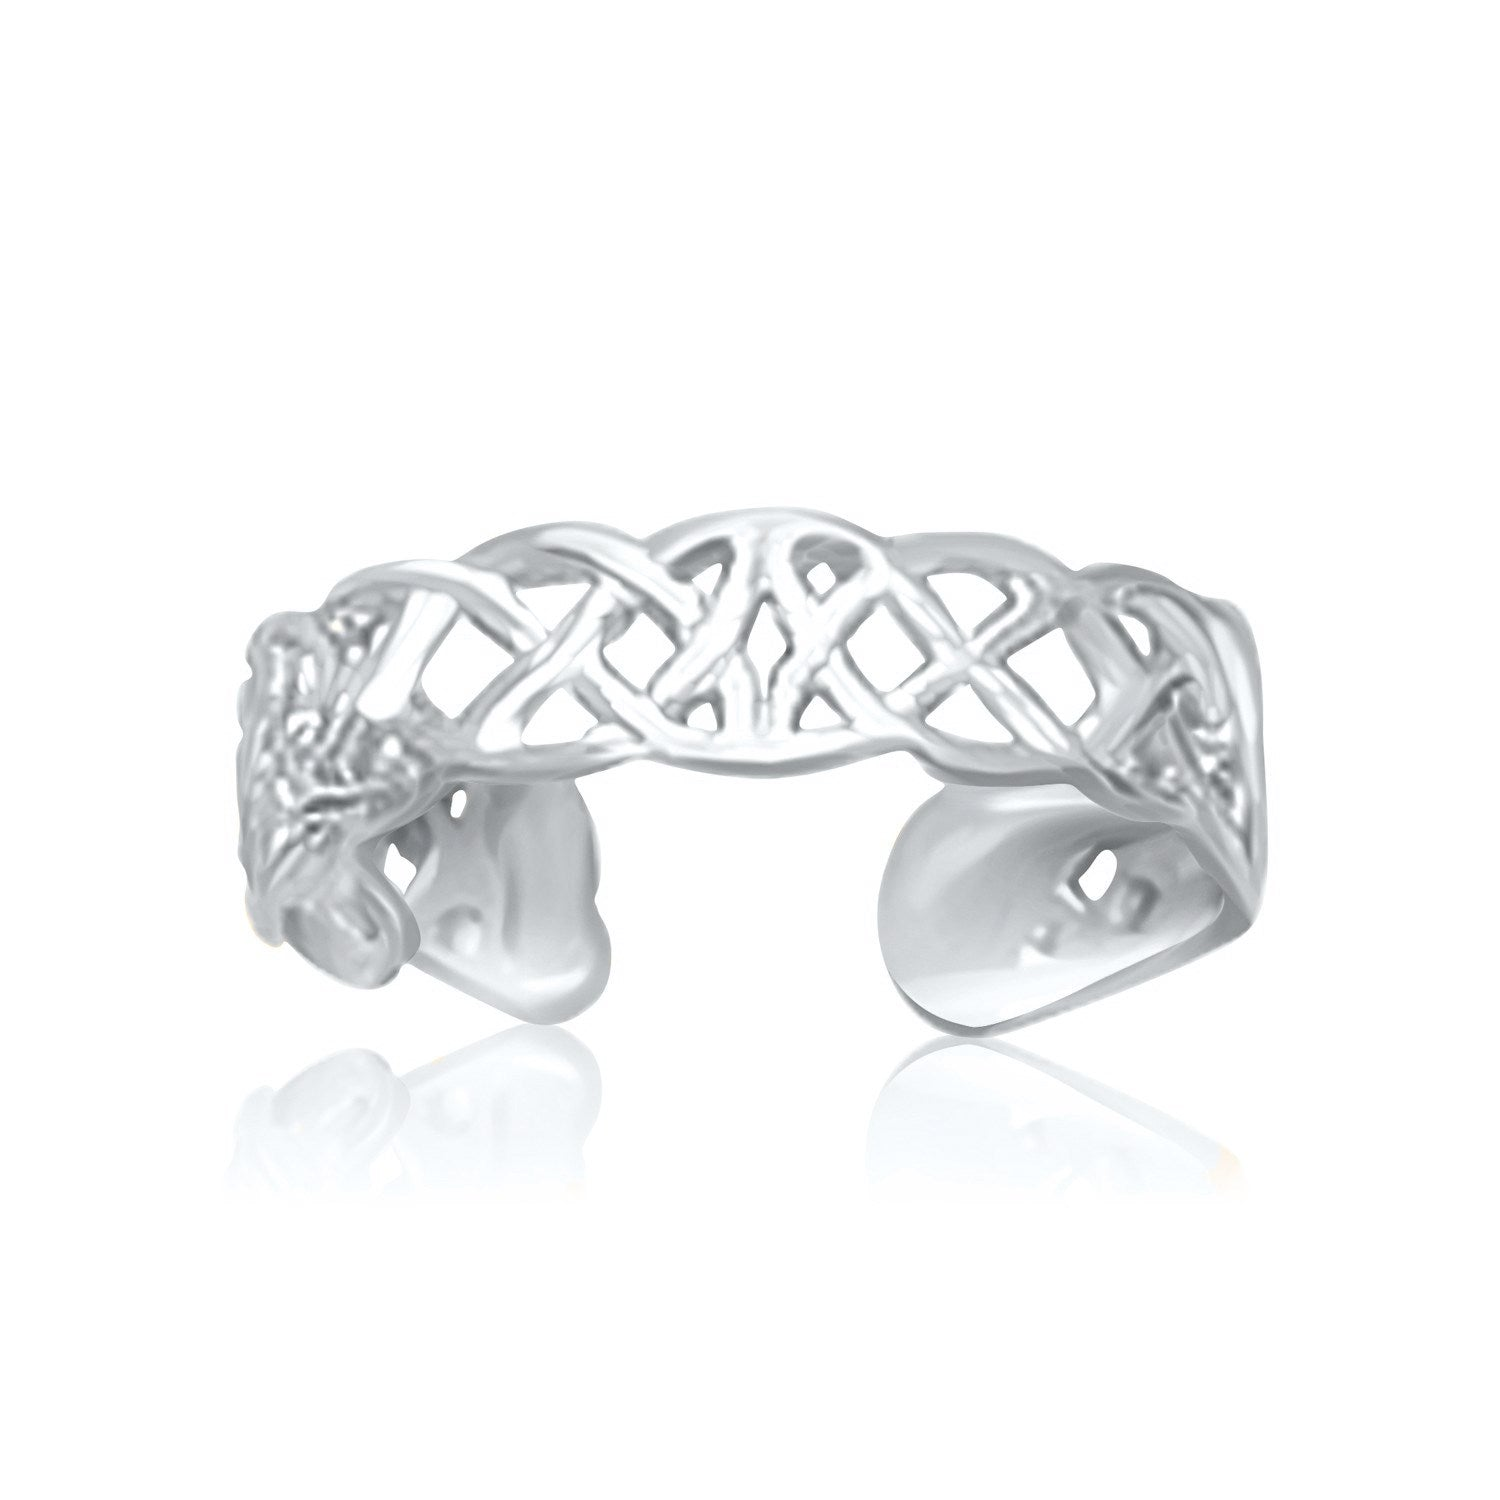 14K White Gold Toe Ring in a Celtic Knot Style - Uniquepedia.com